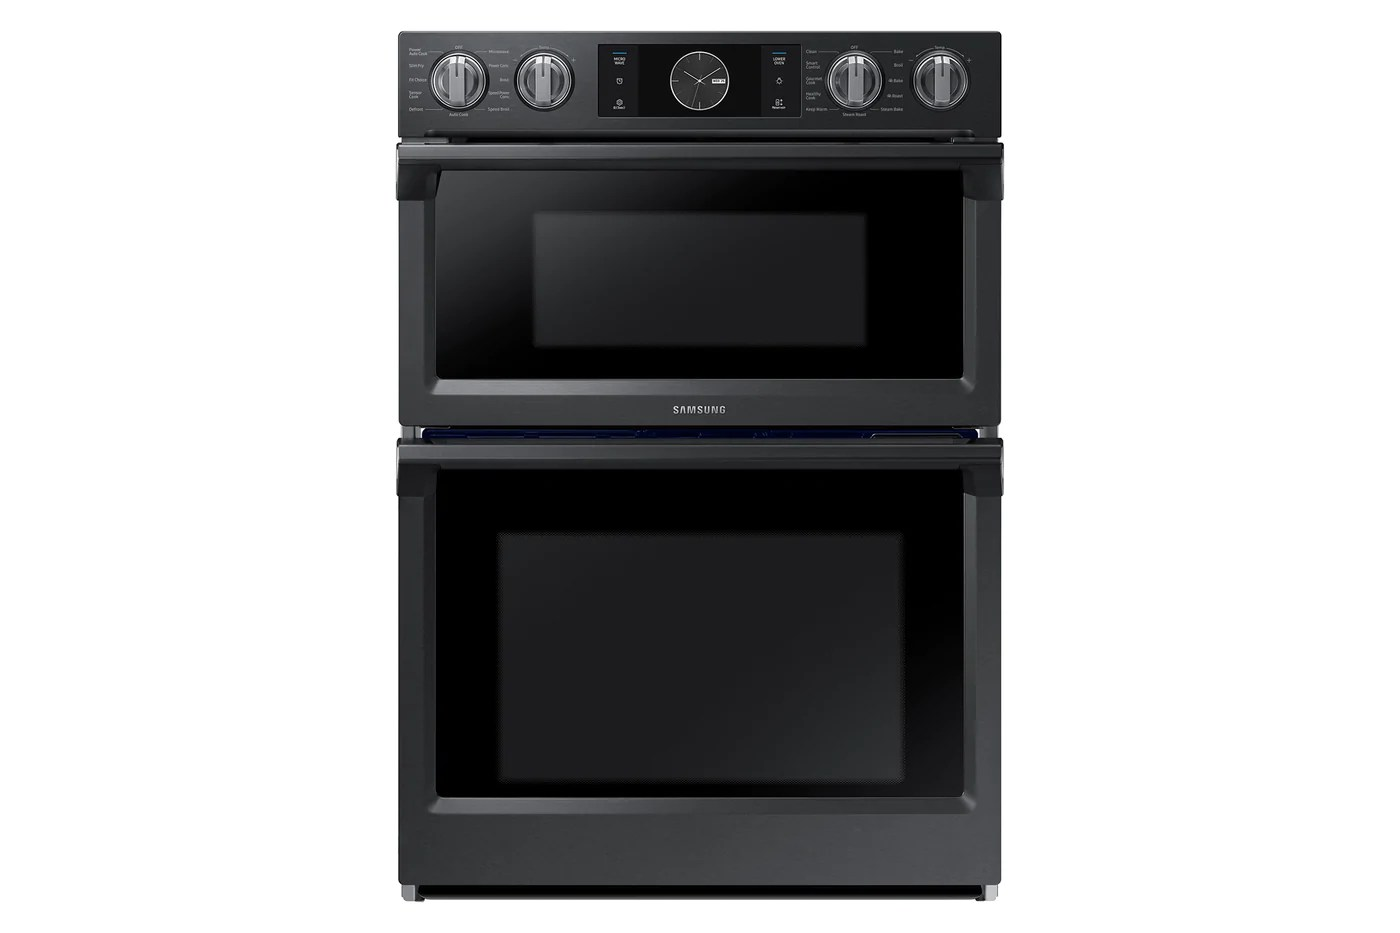 samsung black stainless steel 30 inch wall oven 5 1 cu ft with microwave 1 9 cu ft nq70m7770dg aa